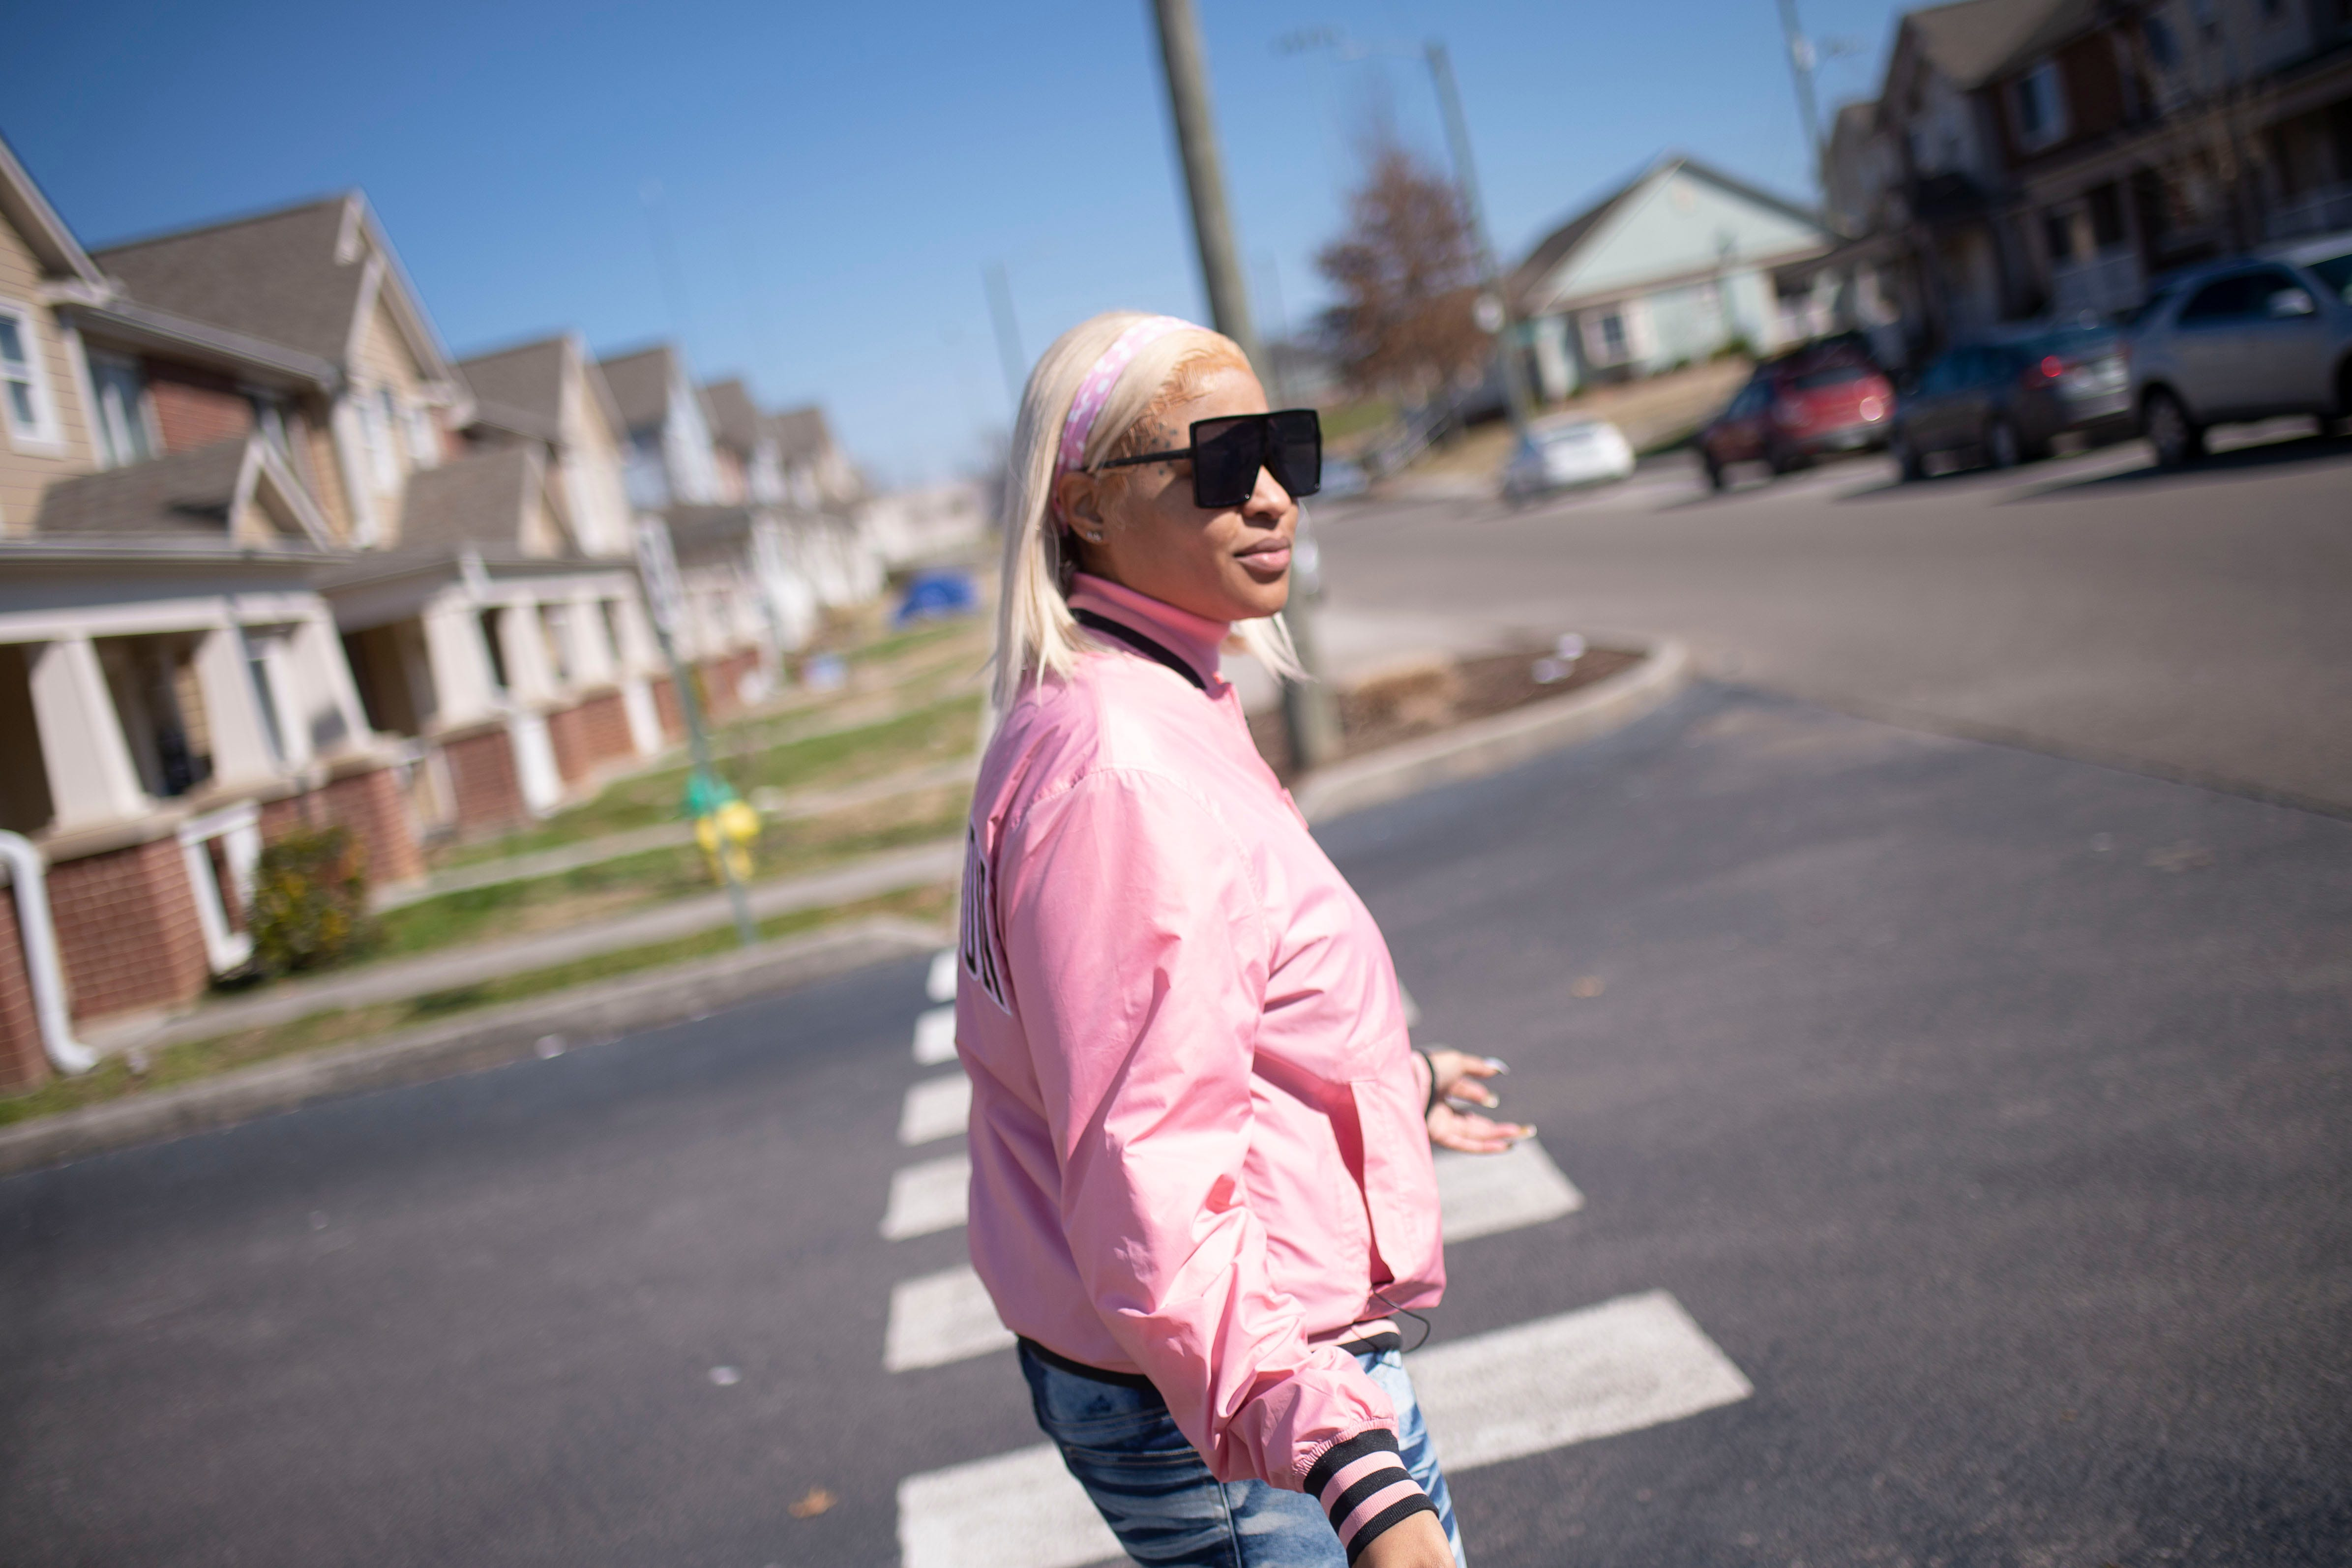 Niya Goins walks through the Lonsdale neighborhood she grew up in, stopping to talk to fans who recognize her for the music she's been creating since last year. But recognition does not equal rewards, and Goins has since moved on to Atlanta to start her career in a city with more musical resources and a higher level of acceptance for the rap and hip-hop genres.